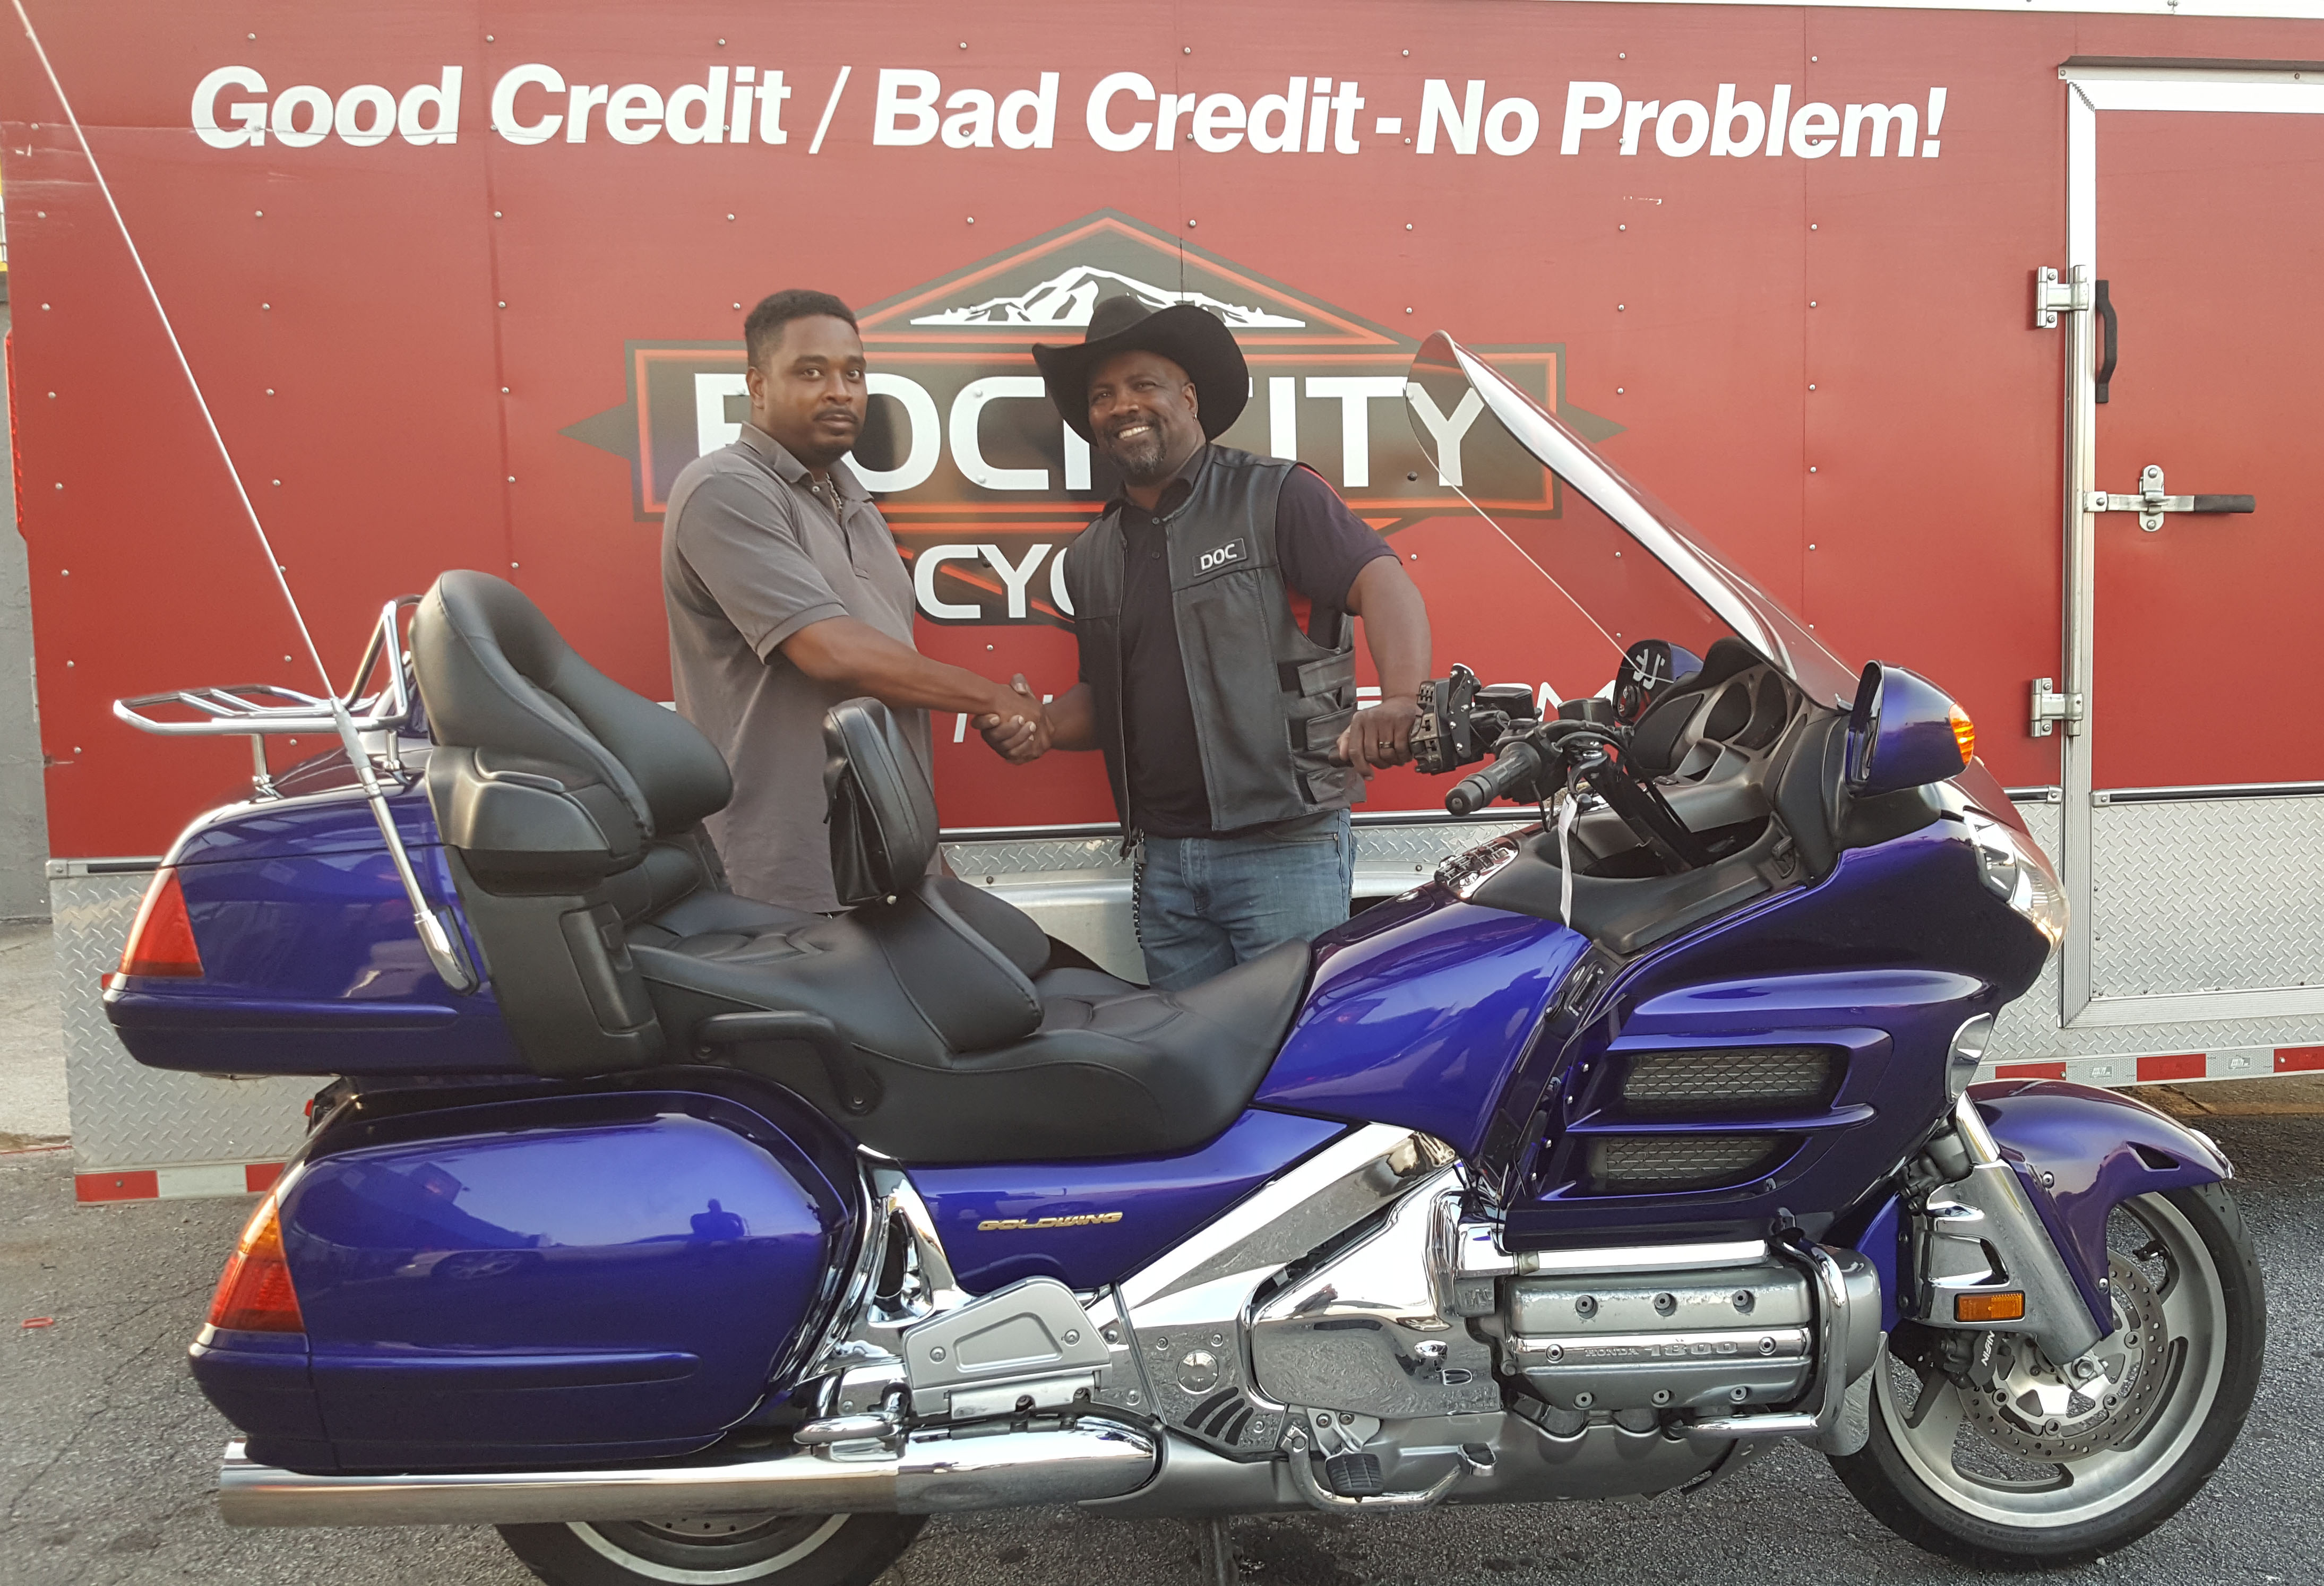 Richard R. with his 2003 Honda Gold Wing GL1800